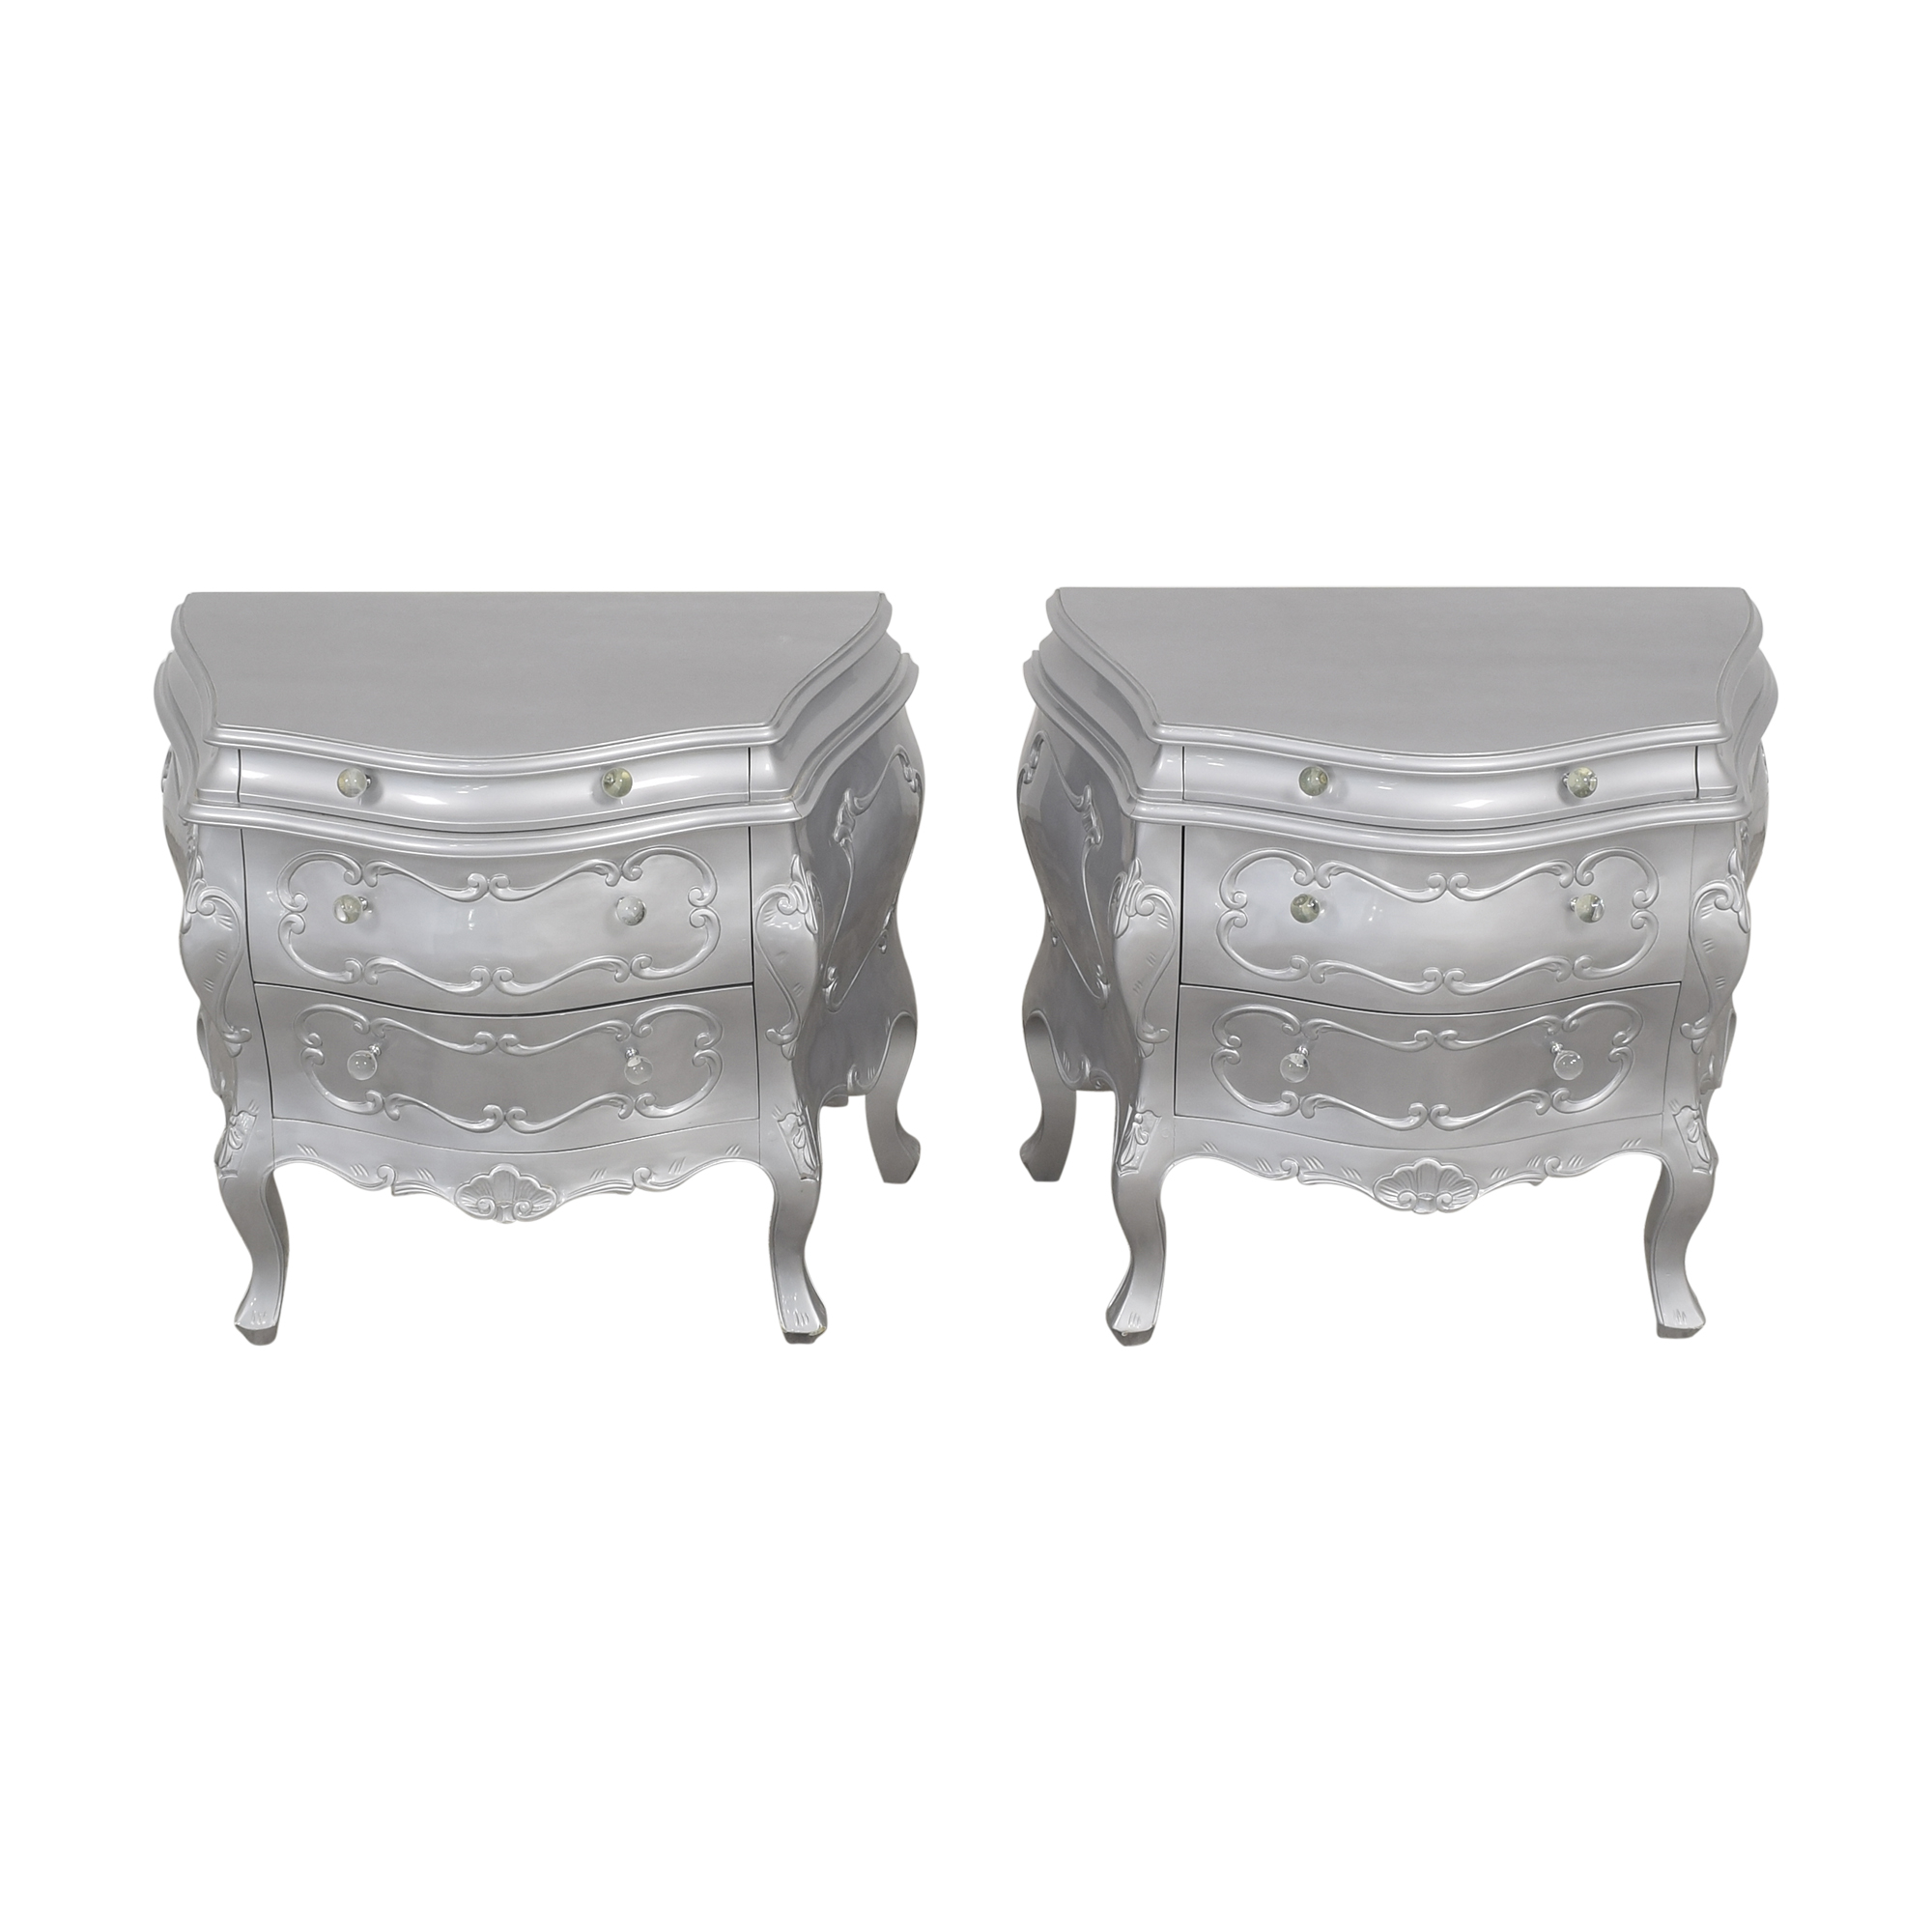 French-Style Nightstands / Tables